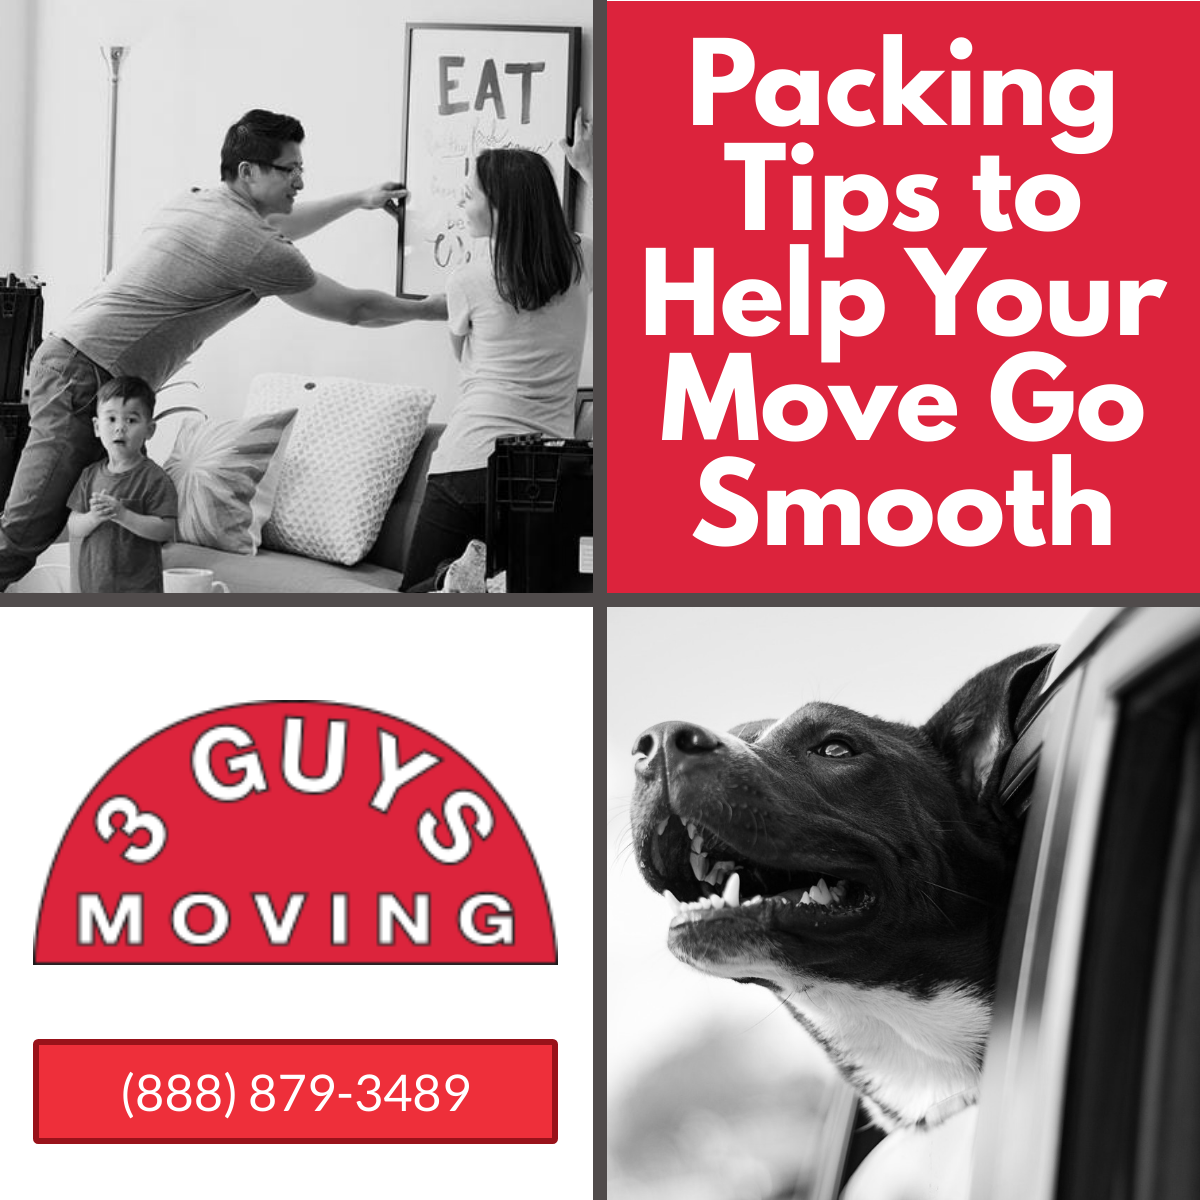 Packing Tips Move Smooth - Packing Tips to Help Your Move Go Smooth